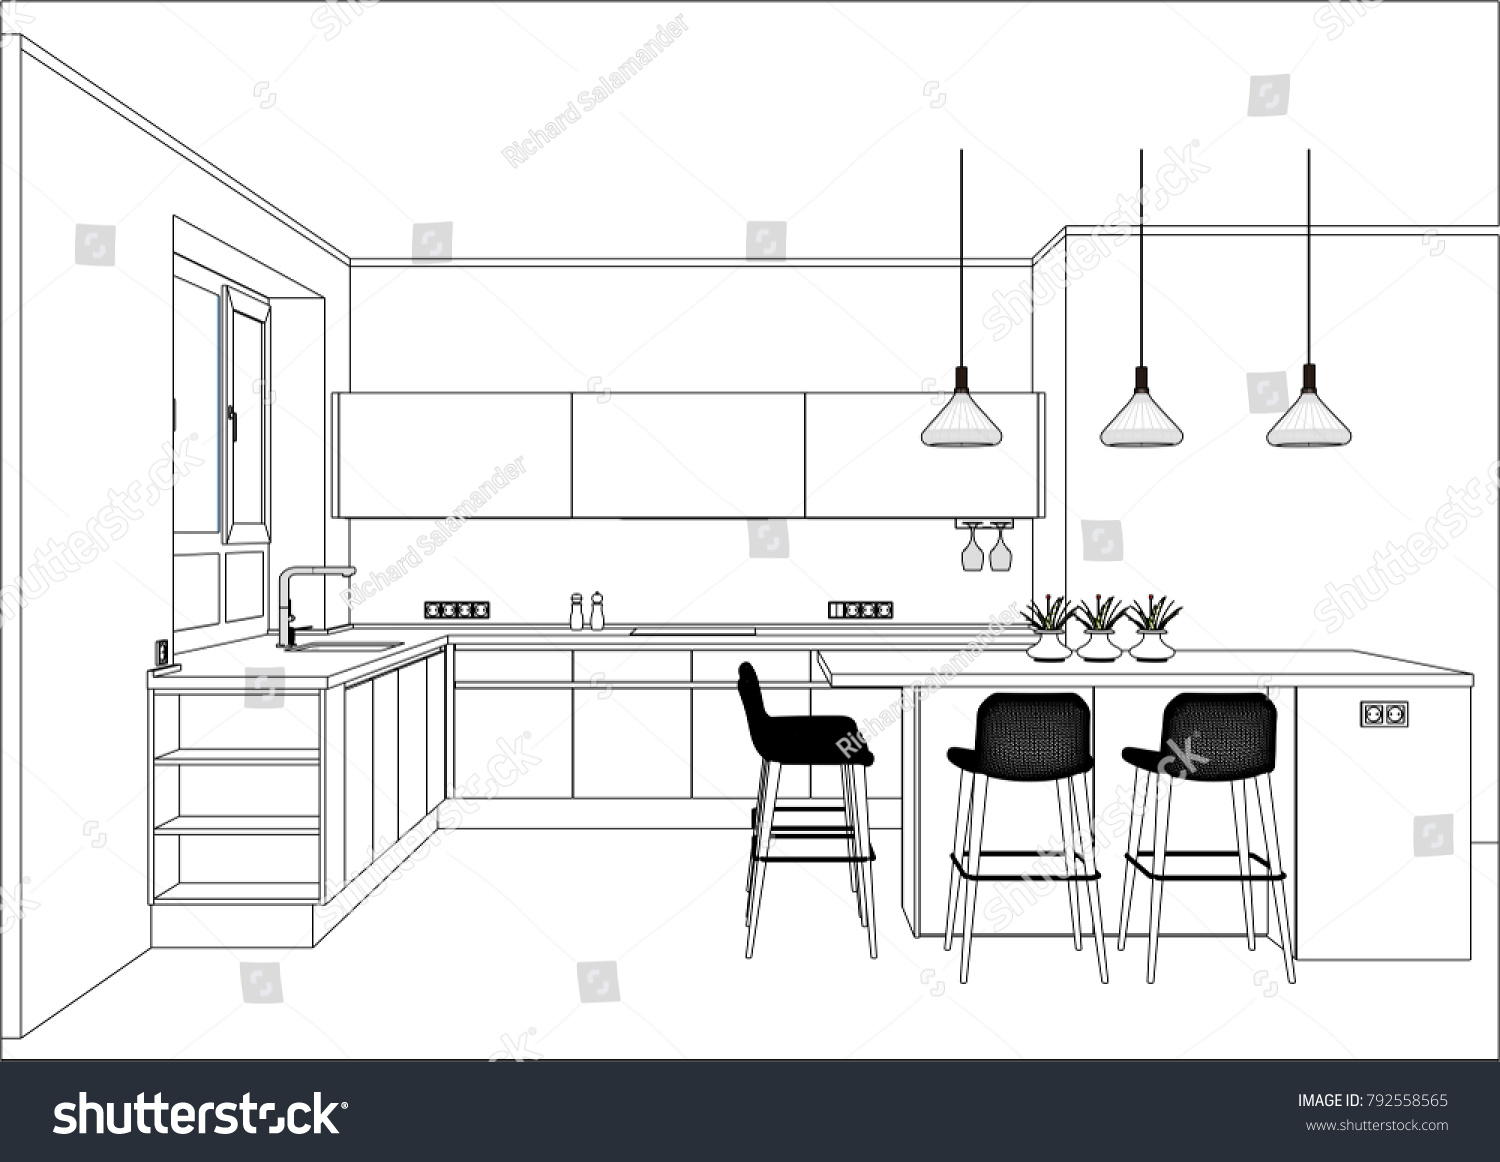 3d Vector Sketch Modern Kitchen Design Stock Vector Royalty Free 792558565